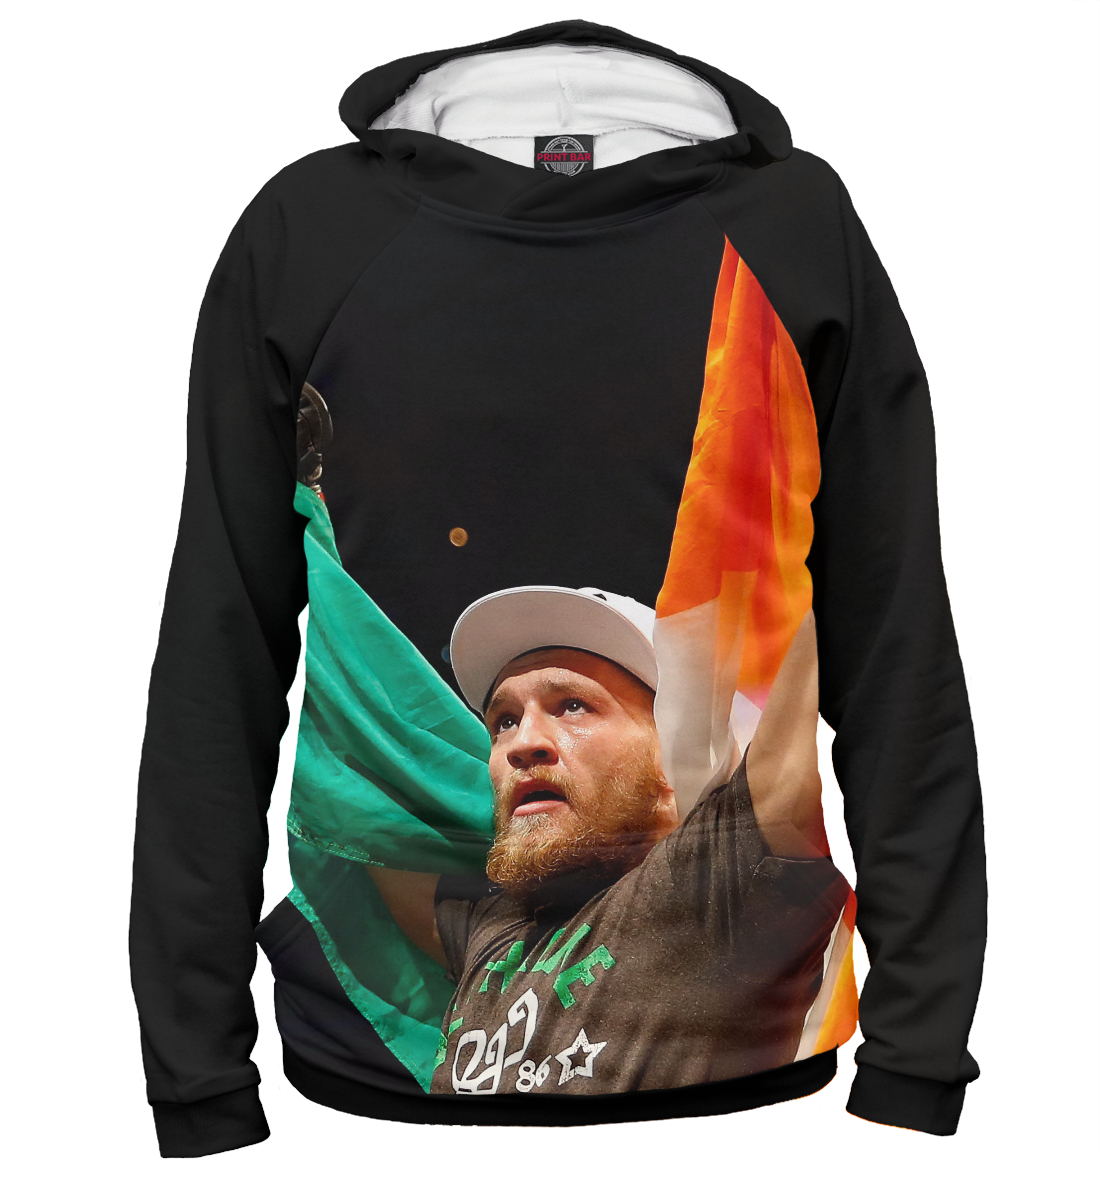 Купить Conor McGregor, Printbar, Худи, MCG-743331-hud-2